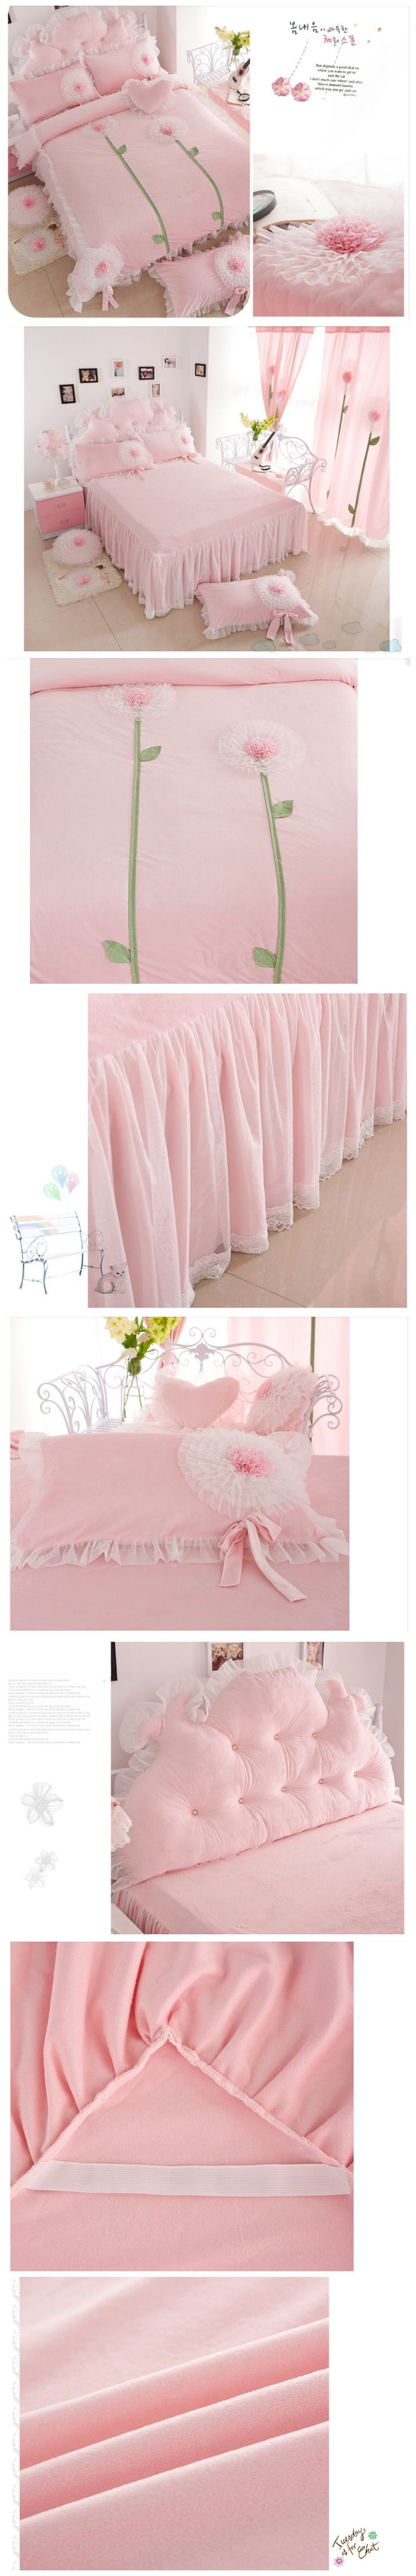 1000 ideas about princess beds on pinterest castle bed canopies and beds - Twin size princess bed set ...